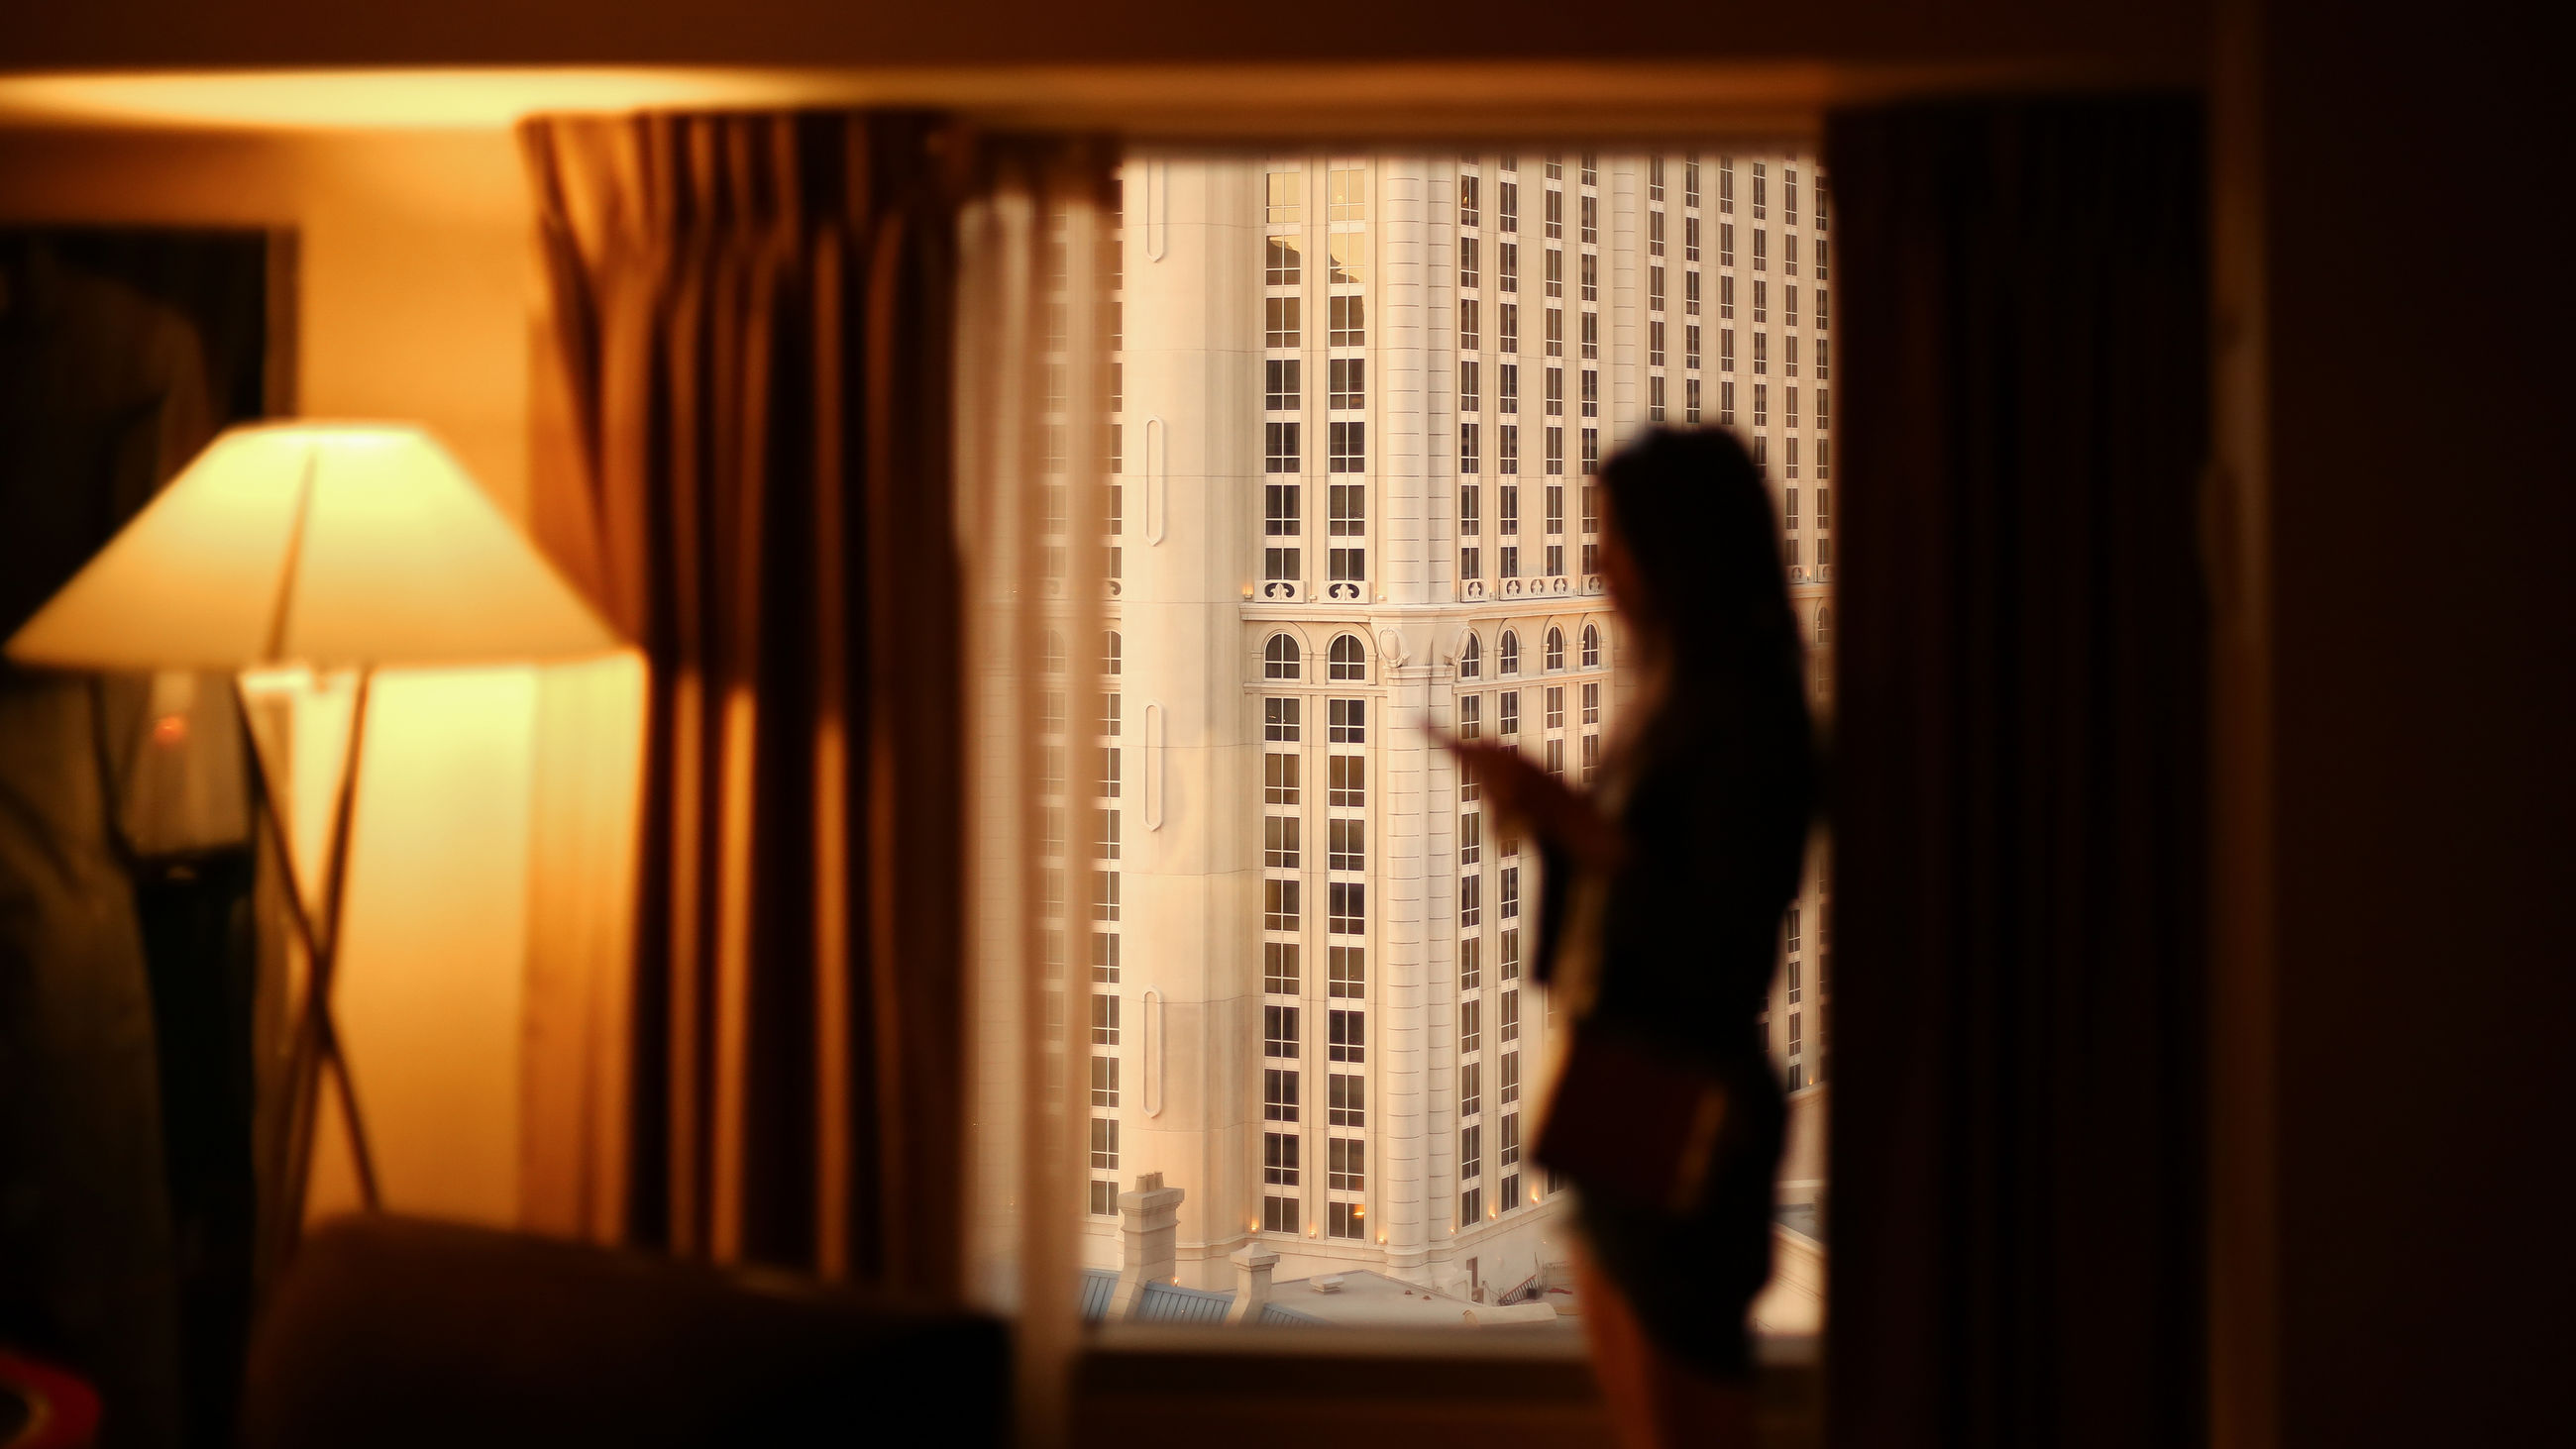 indoors, curtain, window, drapes, home interior, one person, selective focus, real people, standing, blinds, lifestyles, bedroom, day, close-up, people